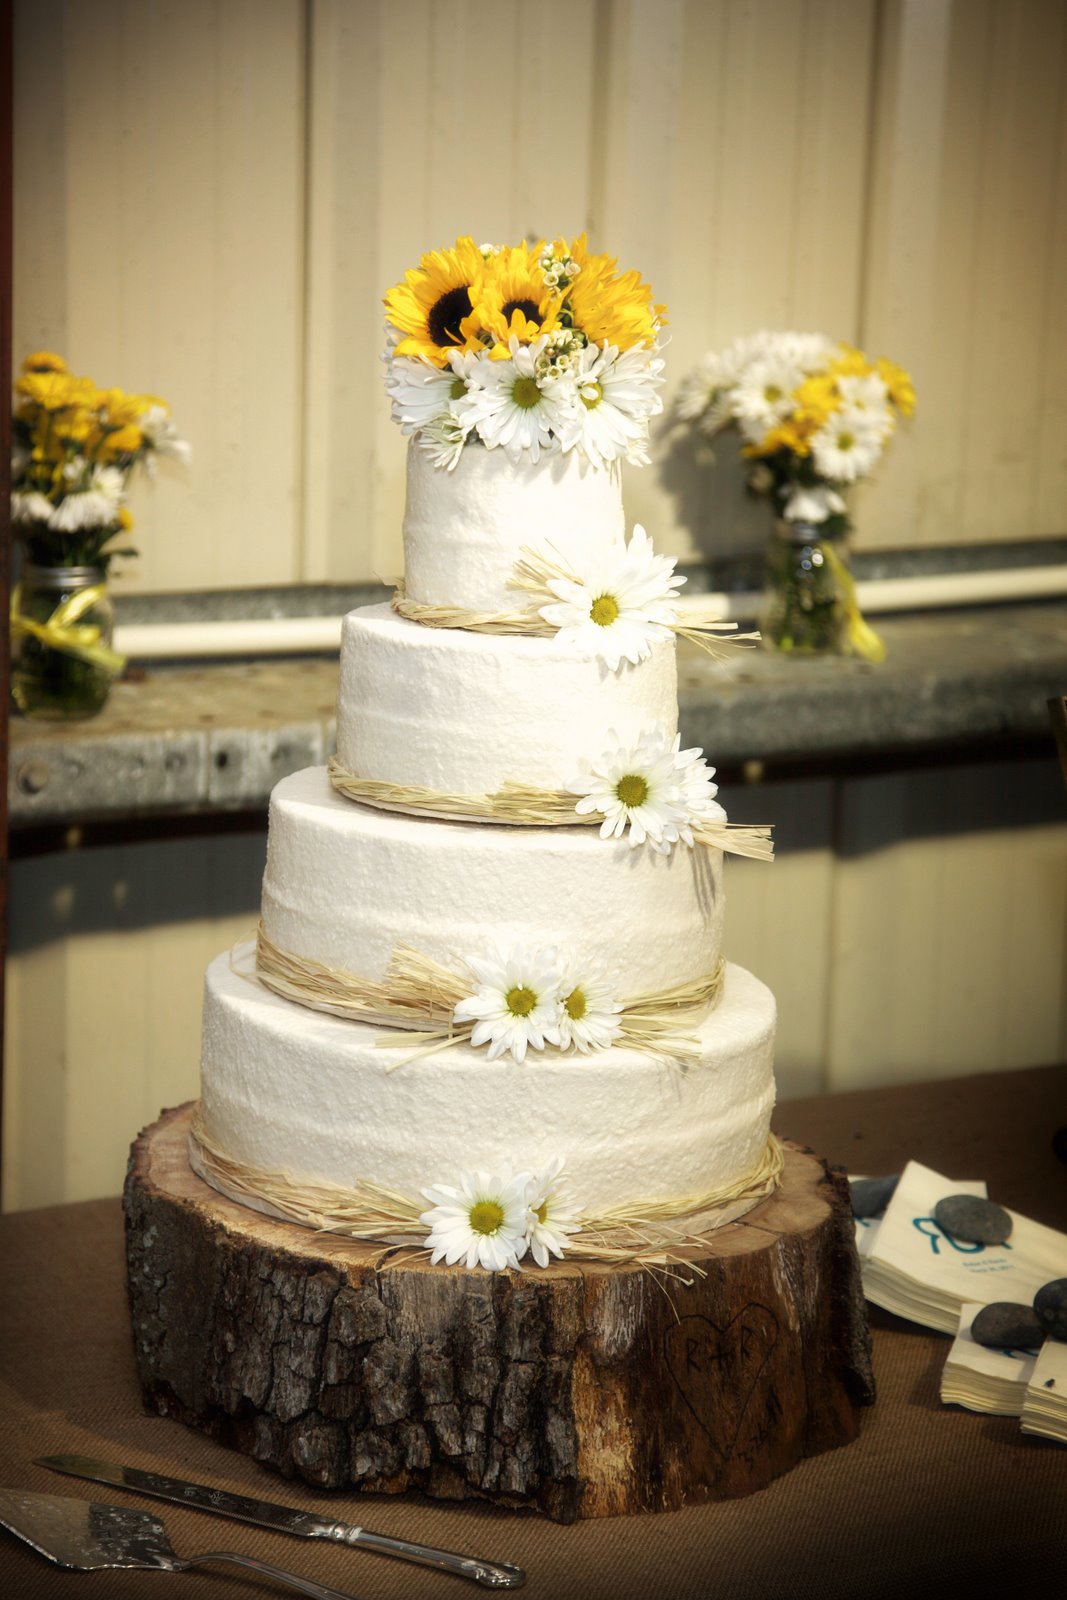 Wedding Cakes With Sunflowers And Daisies